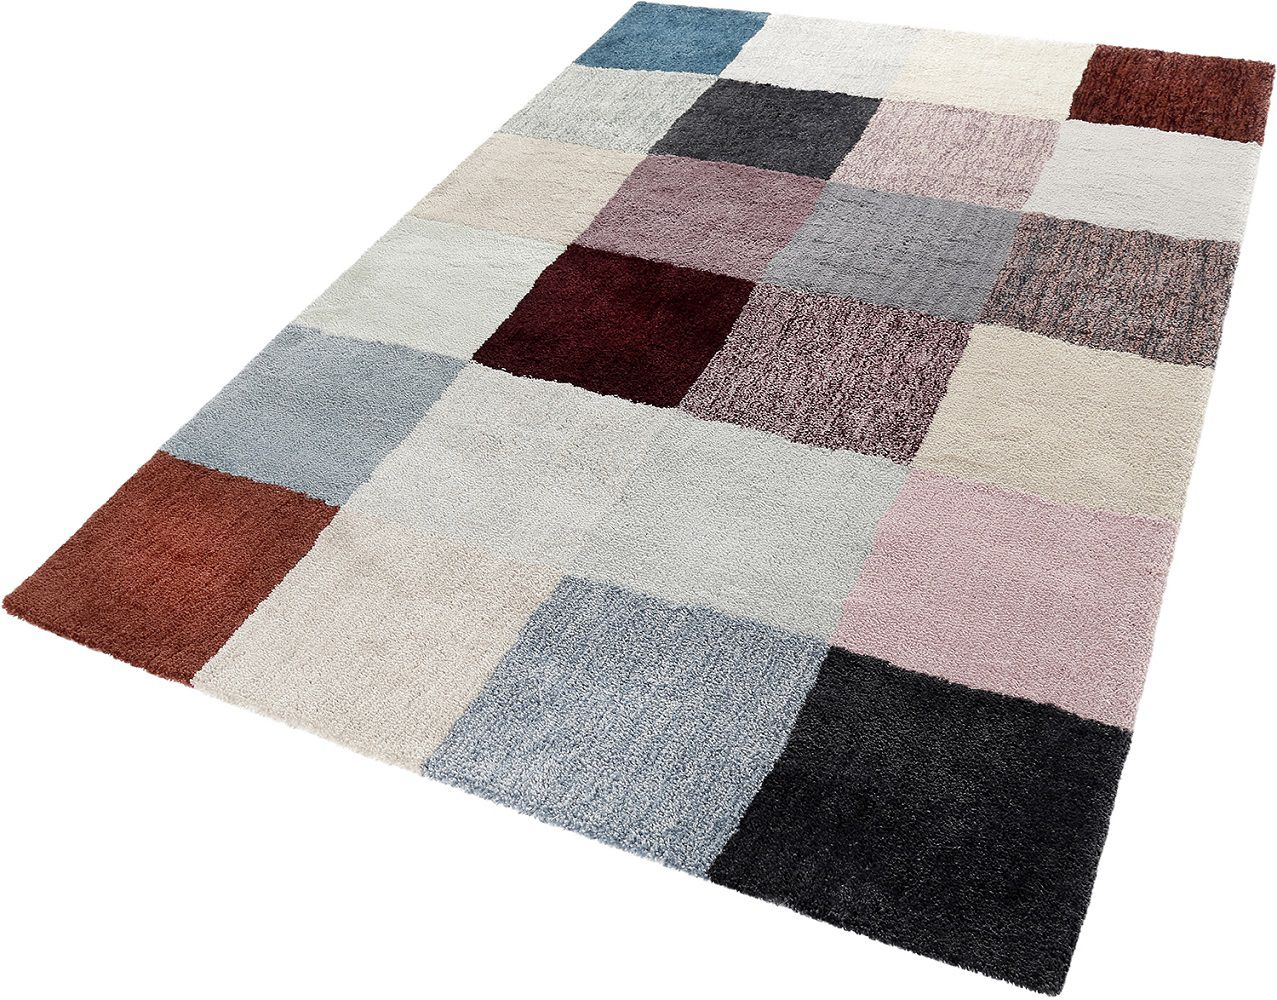 Teppich Esprit Relaxx Esp 4150 Xx Multicolor Raum Quadrat Fashion Your Room Der - Teppich Kinderzimmer Esprit